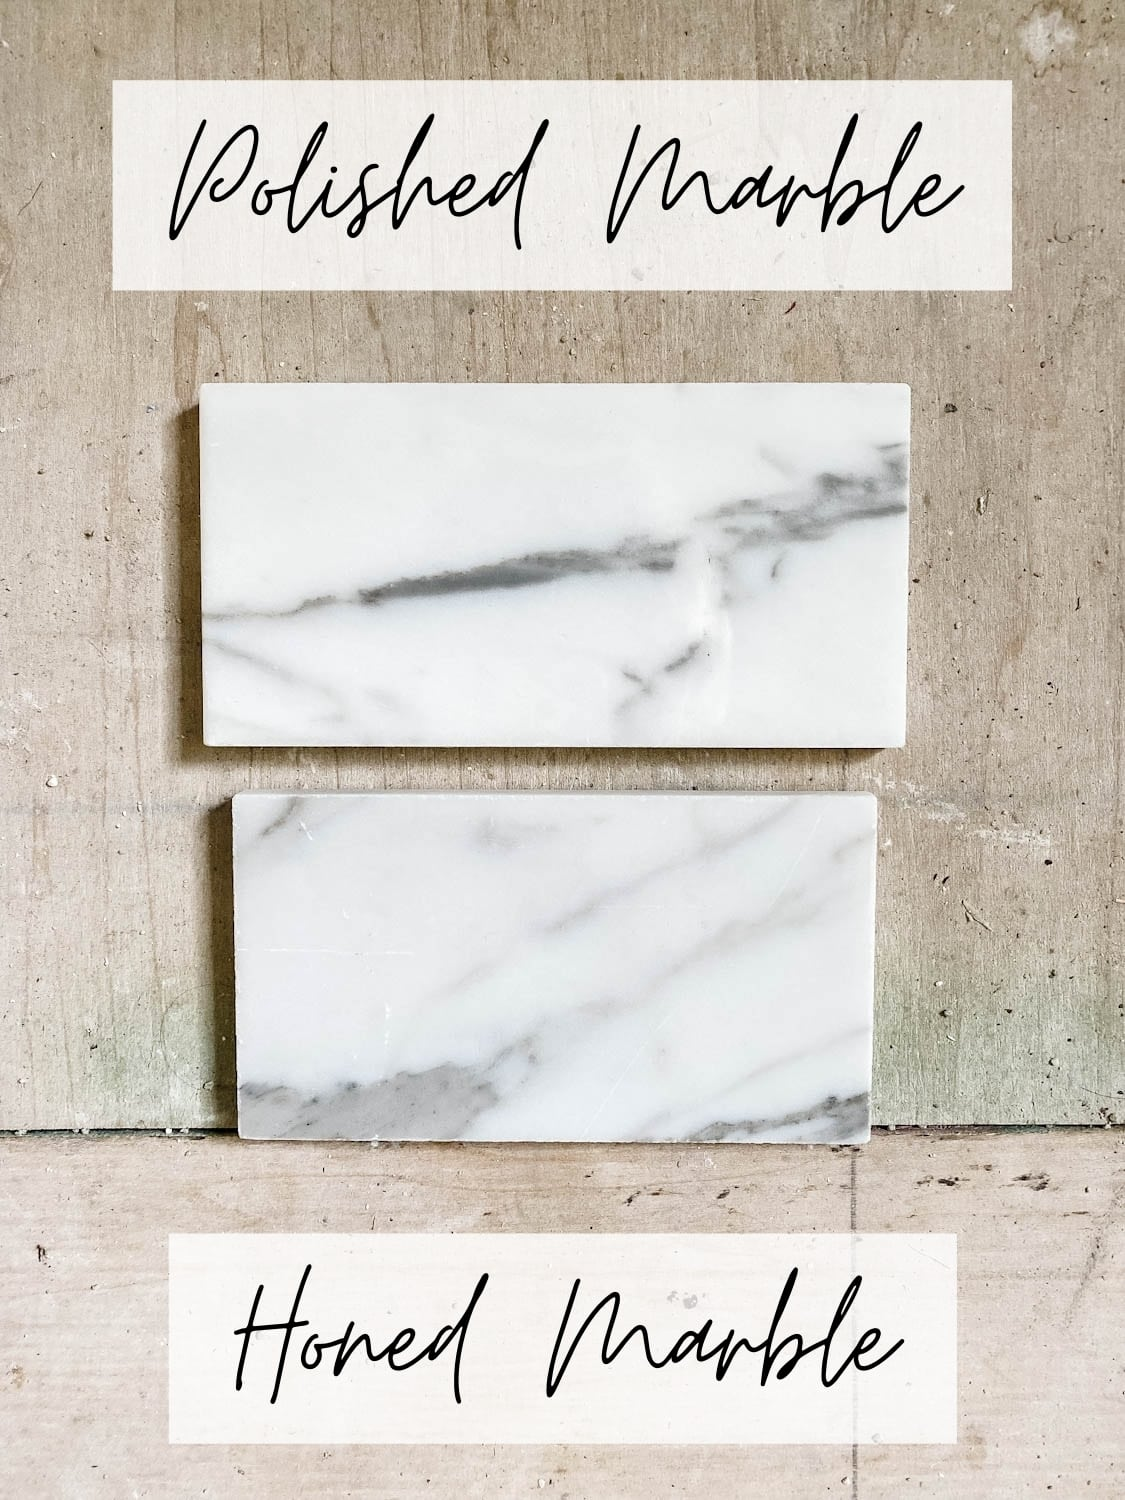 pros and cons of polished marble vs honed marble